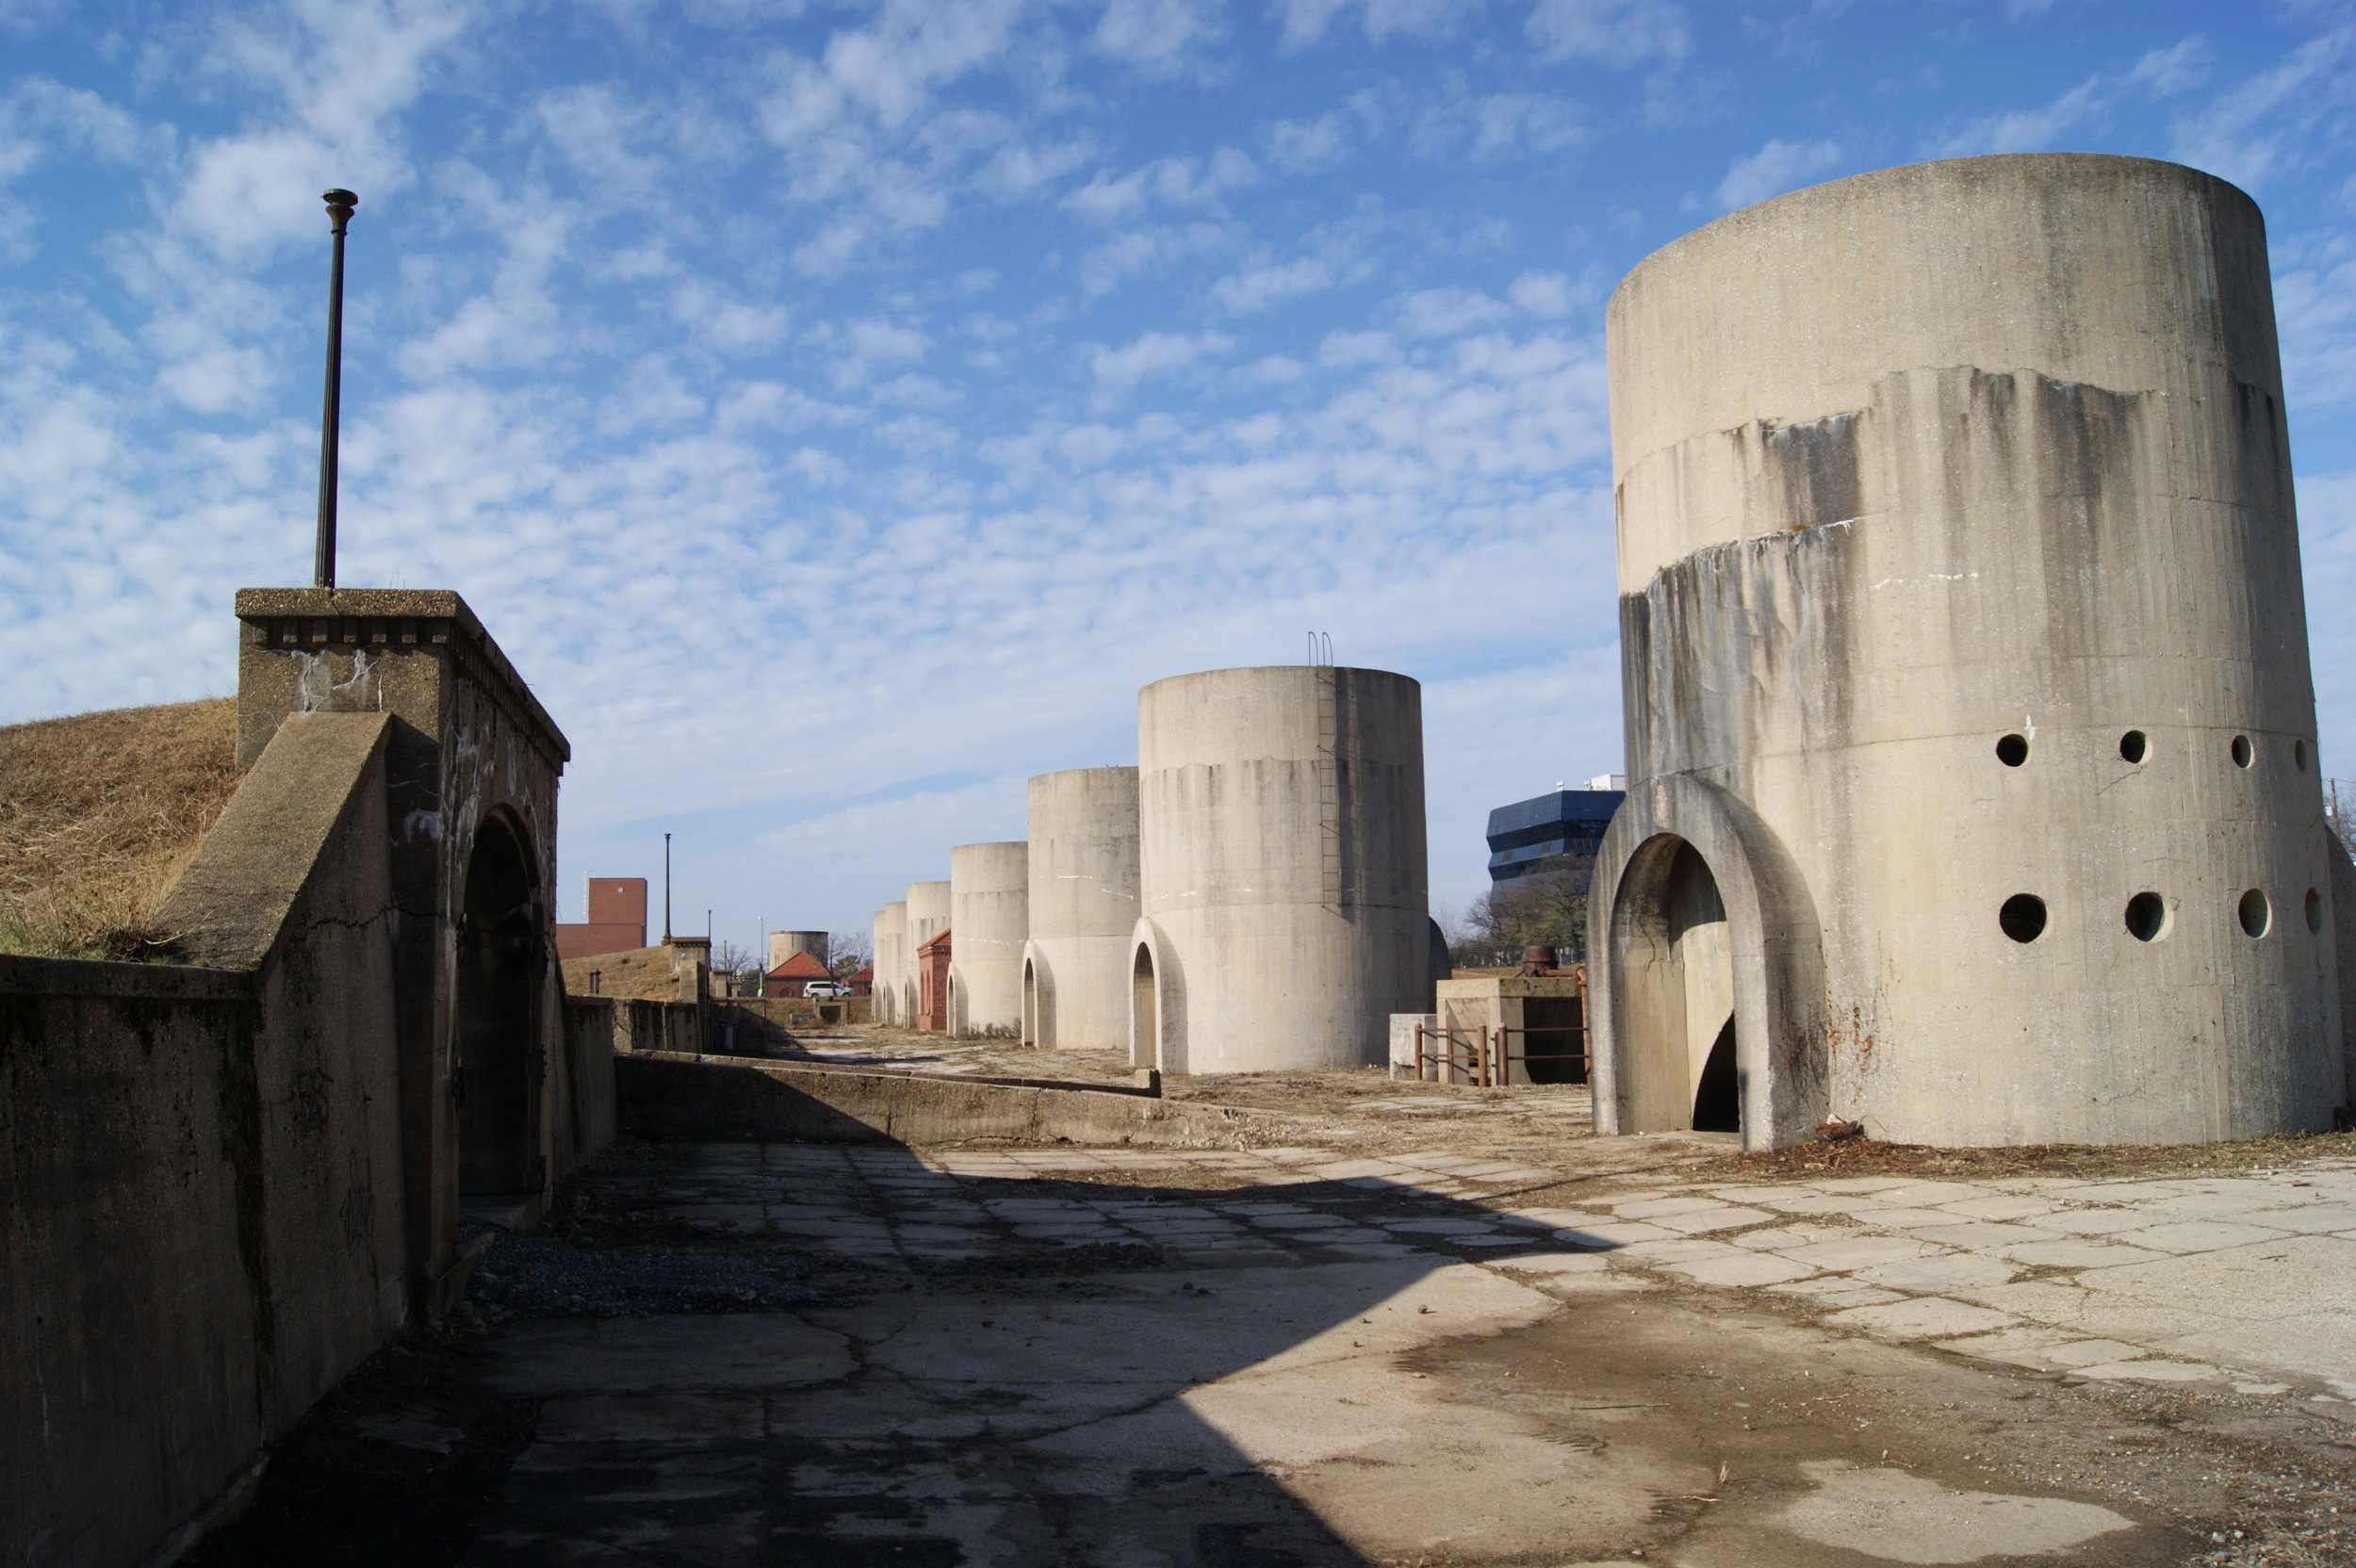 Twenty unreinforced concrete silos dot the reservoir grounds. The drip drip of water, and ever-present patches of sand still strongly evoke the filtration plant's operational days. Photo: Elliot Carter